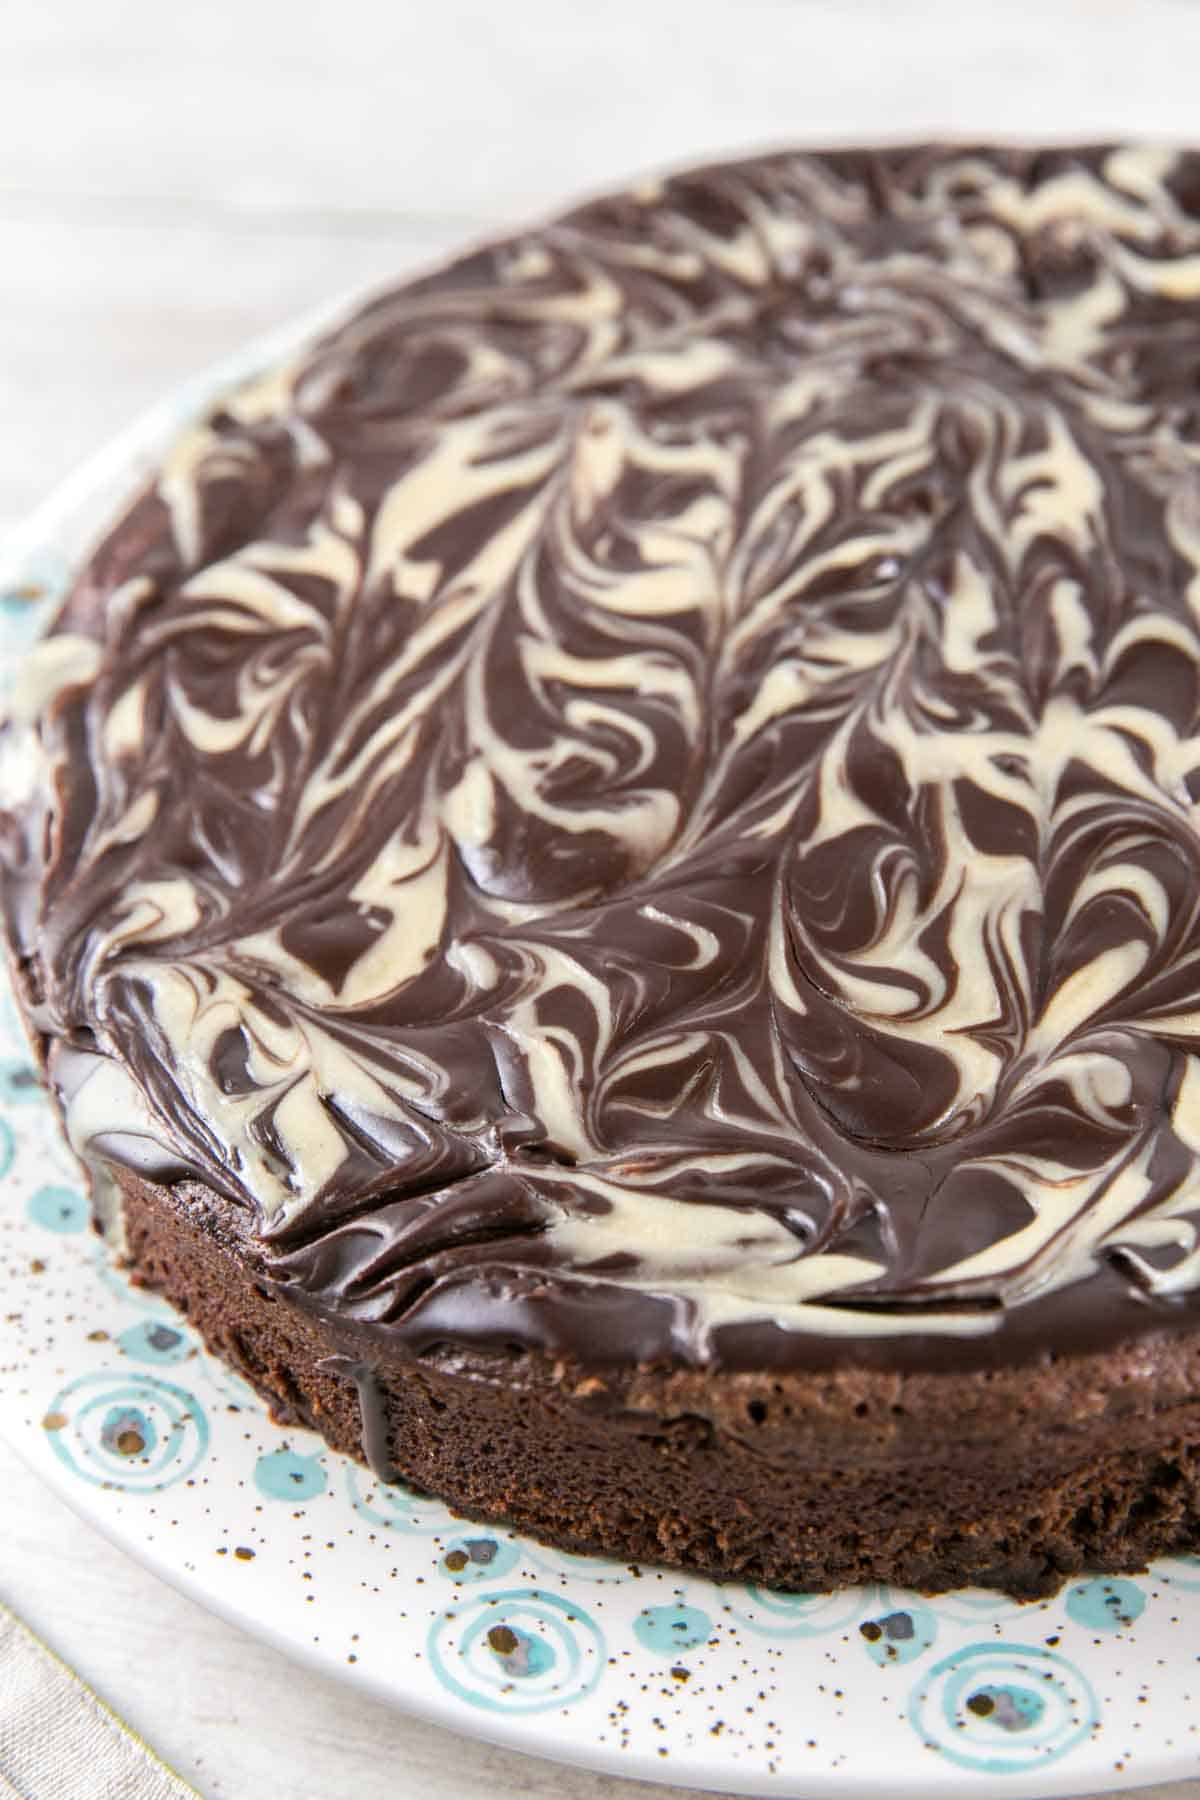 Flourless Chocolate Tahini Cake: Gluten free, Passover friendly, delicious all the time. A rich, decadent flourless chocolate cake with swirls of tahini make an easy, elegant cake. {Bunsen Burner Bakery} #glutenfree #passover #tahini #cake